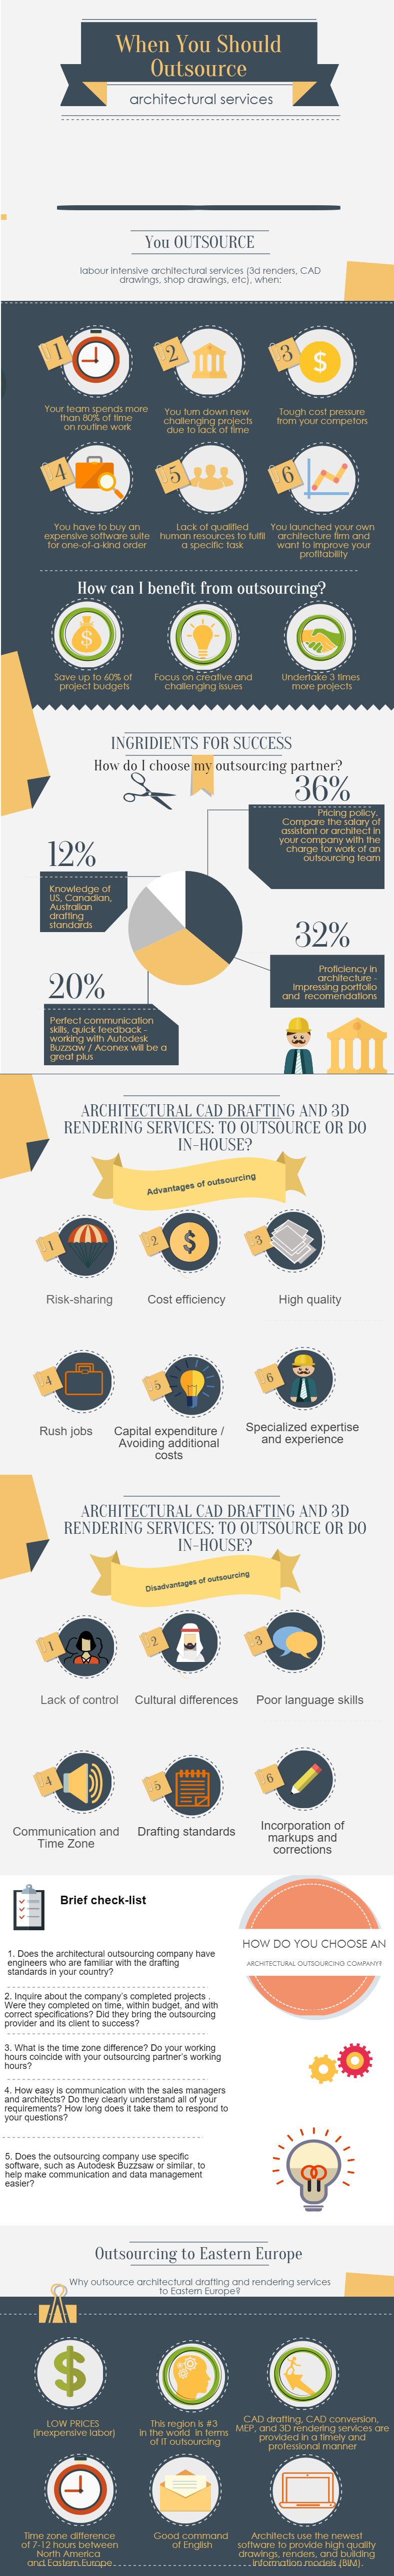 When Should You Outsource rchitectural Services?  Infographic Post - ^